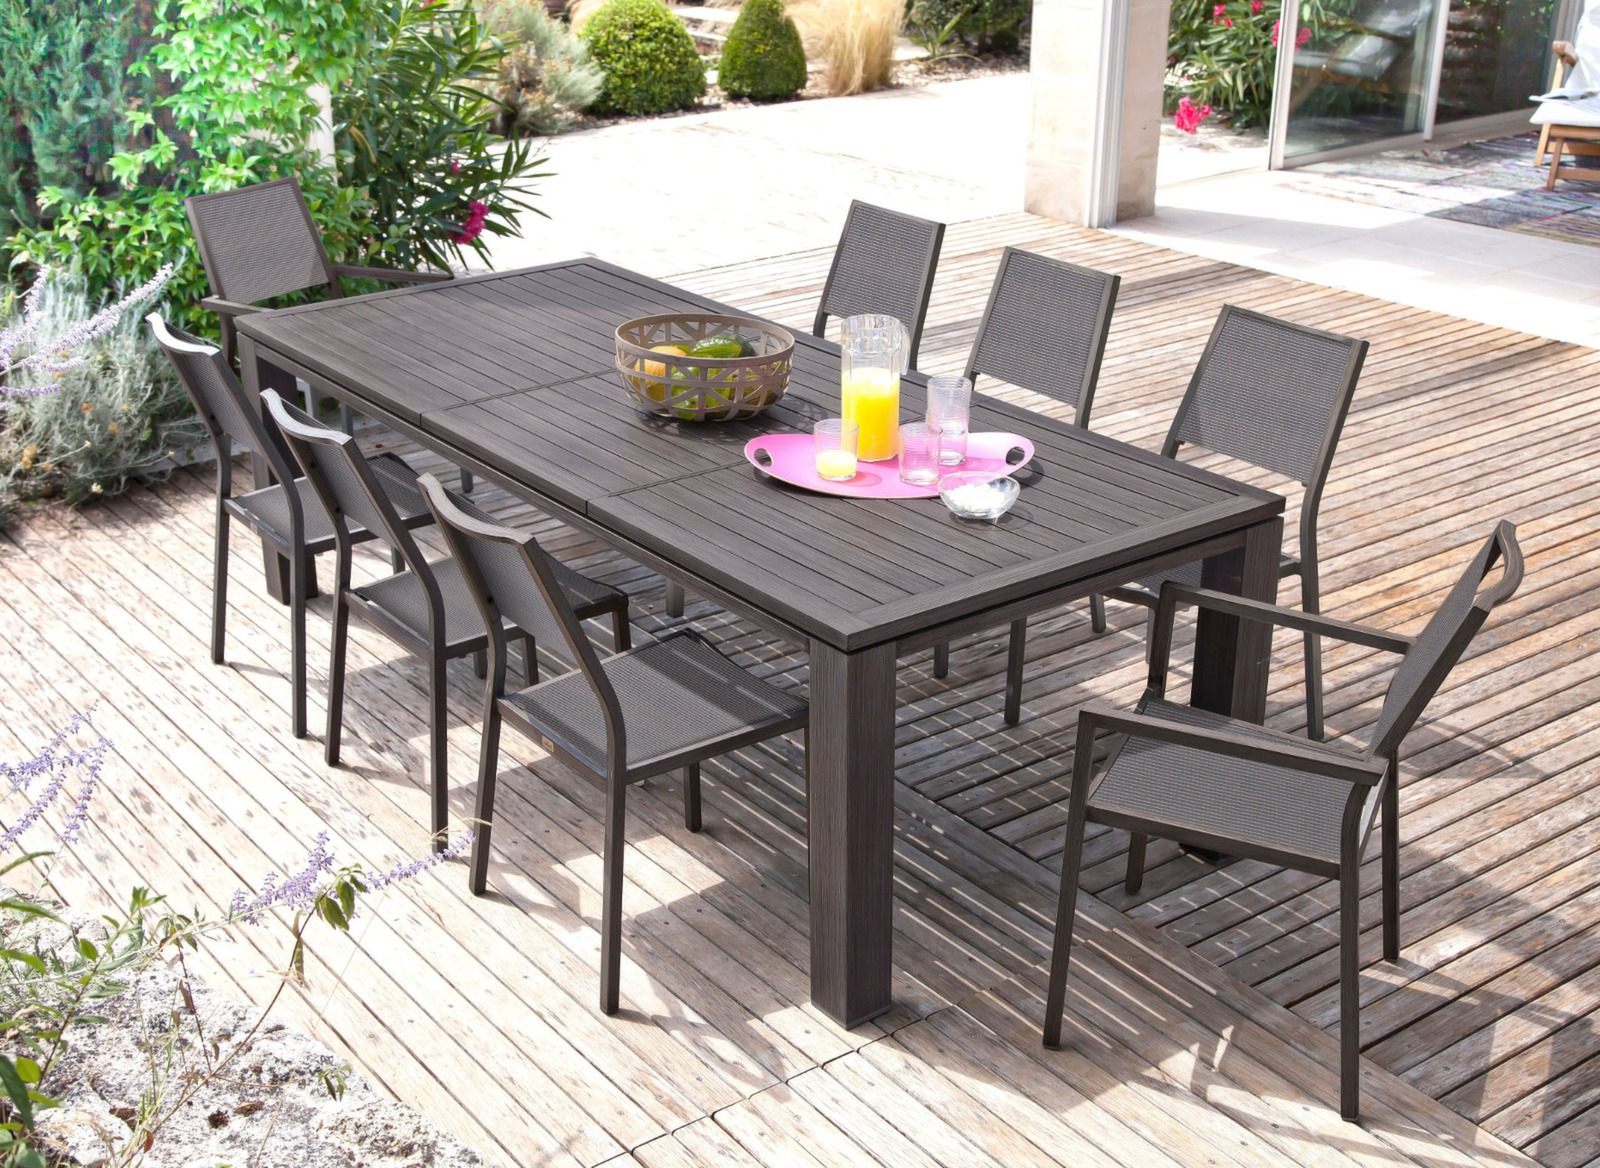 Grande table de jardin rectangle fiero proloisirs - Mobilier de jardin soldes ...